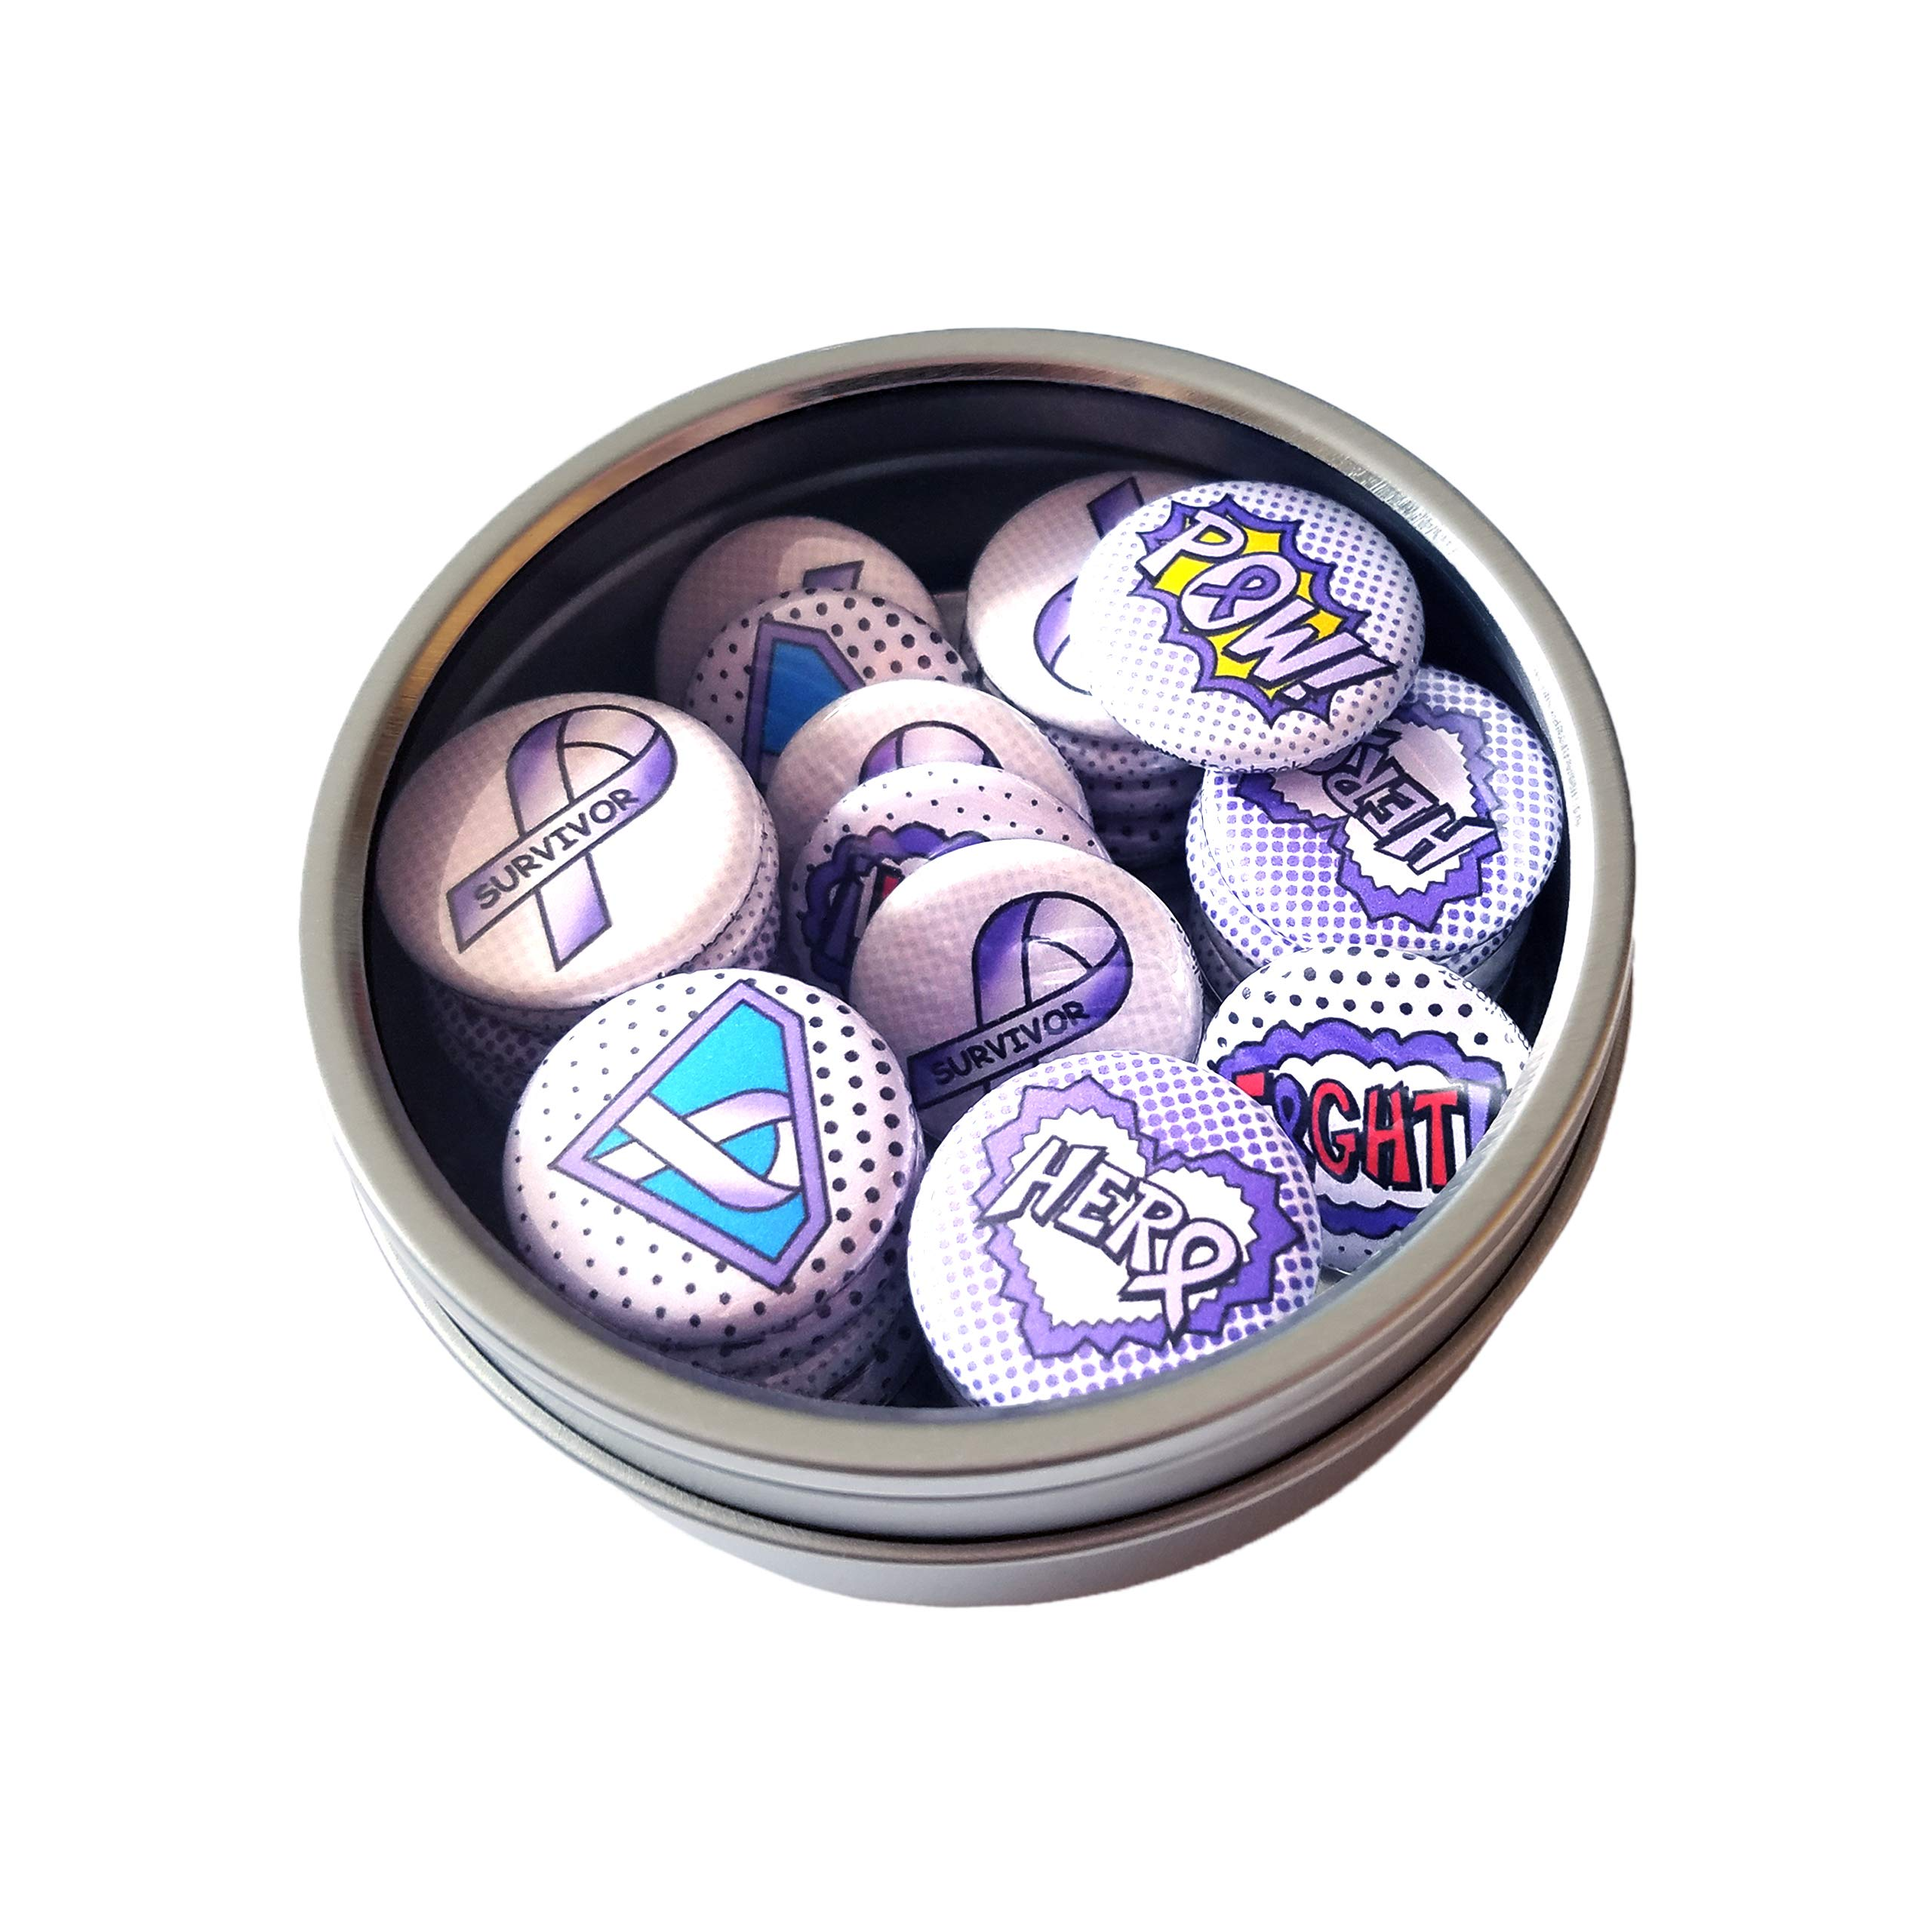 Superhero Awareness Pins - LAVENDER. All Cancer Awareness, Craniosynostosis, Epilepsy, Gynecological Cancer, Hypokalemic Periodic Paralysis, Infantile Spasms, Rett Syndrome. (1'' Pins, 30 Piece Set) by ILMS (Image #4)